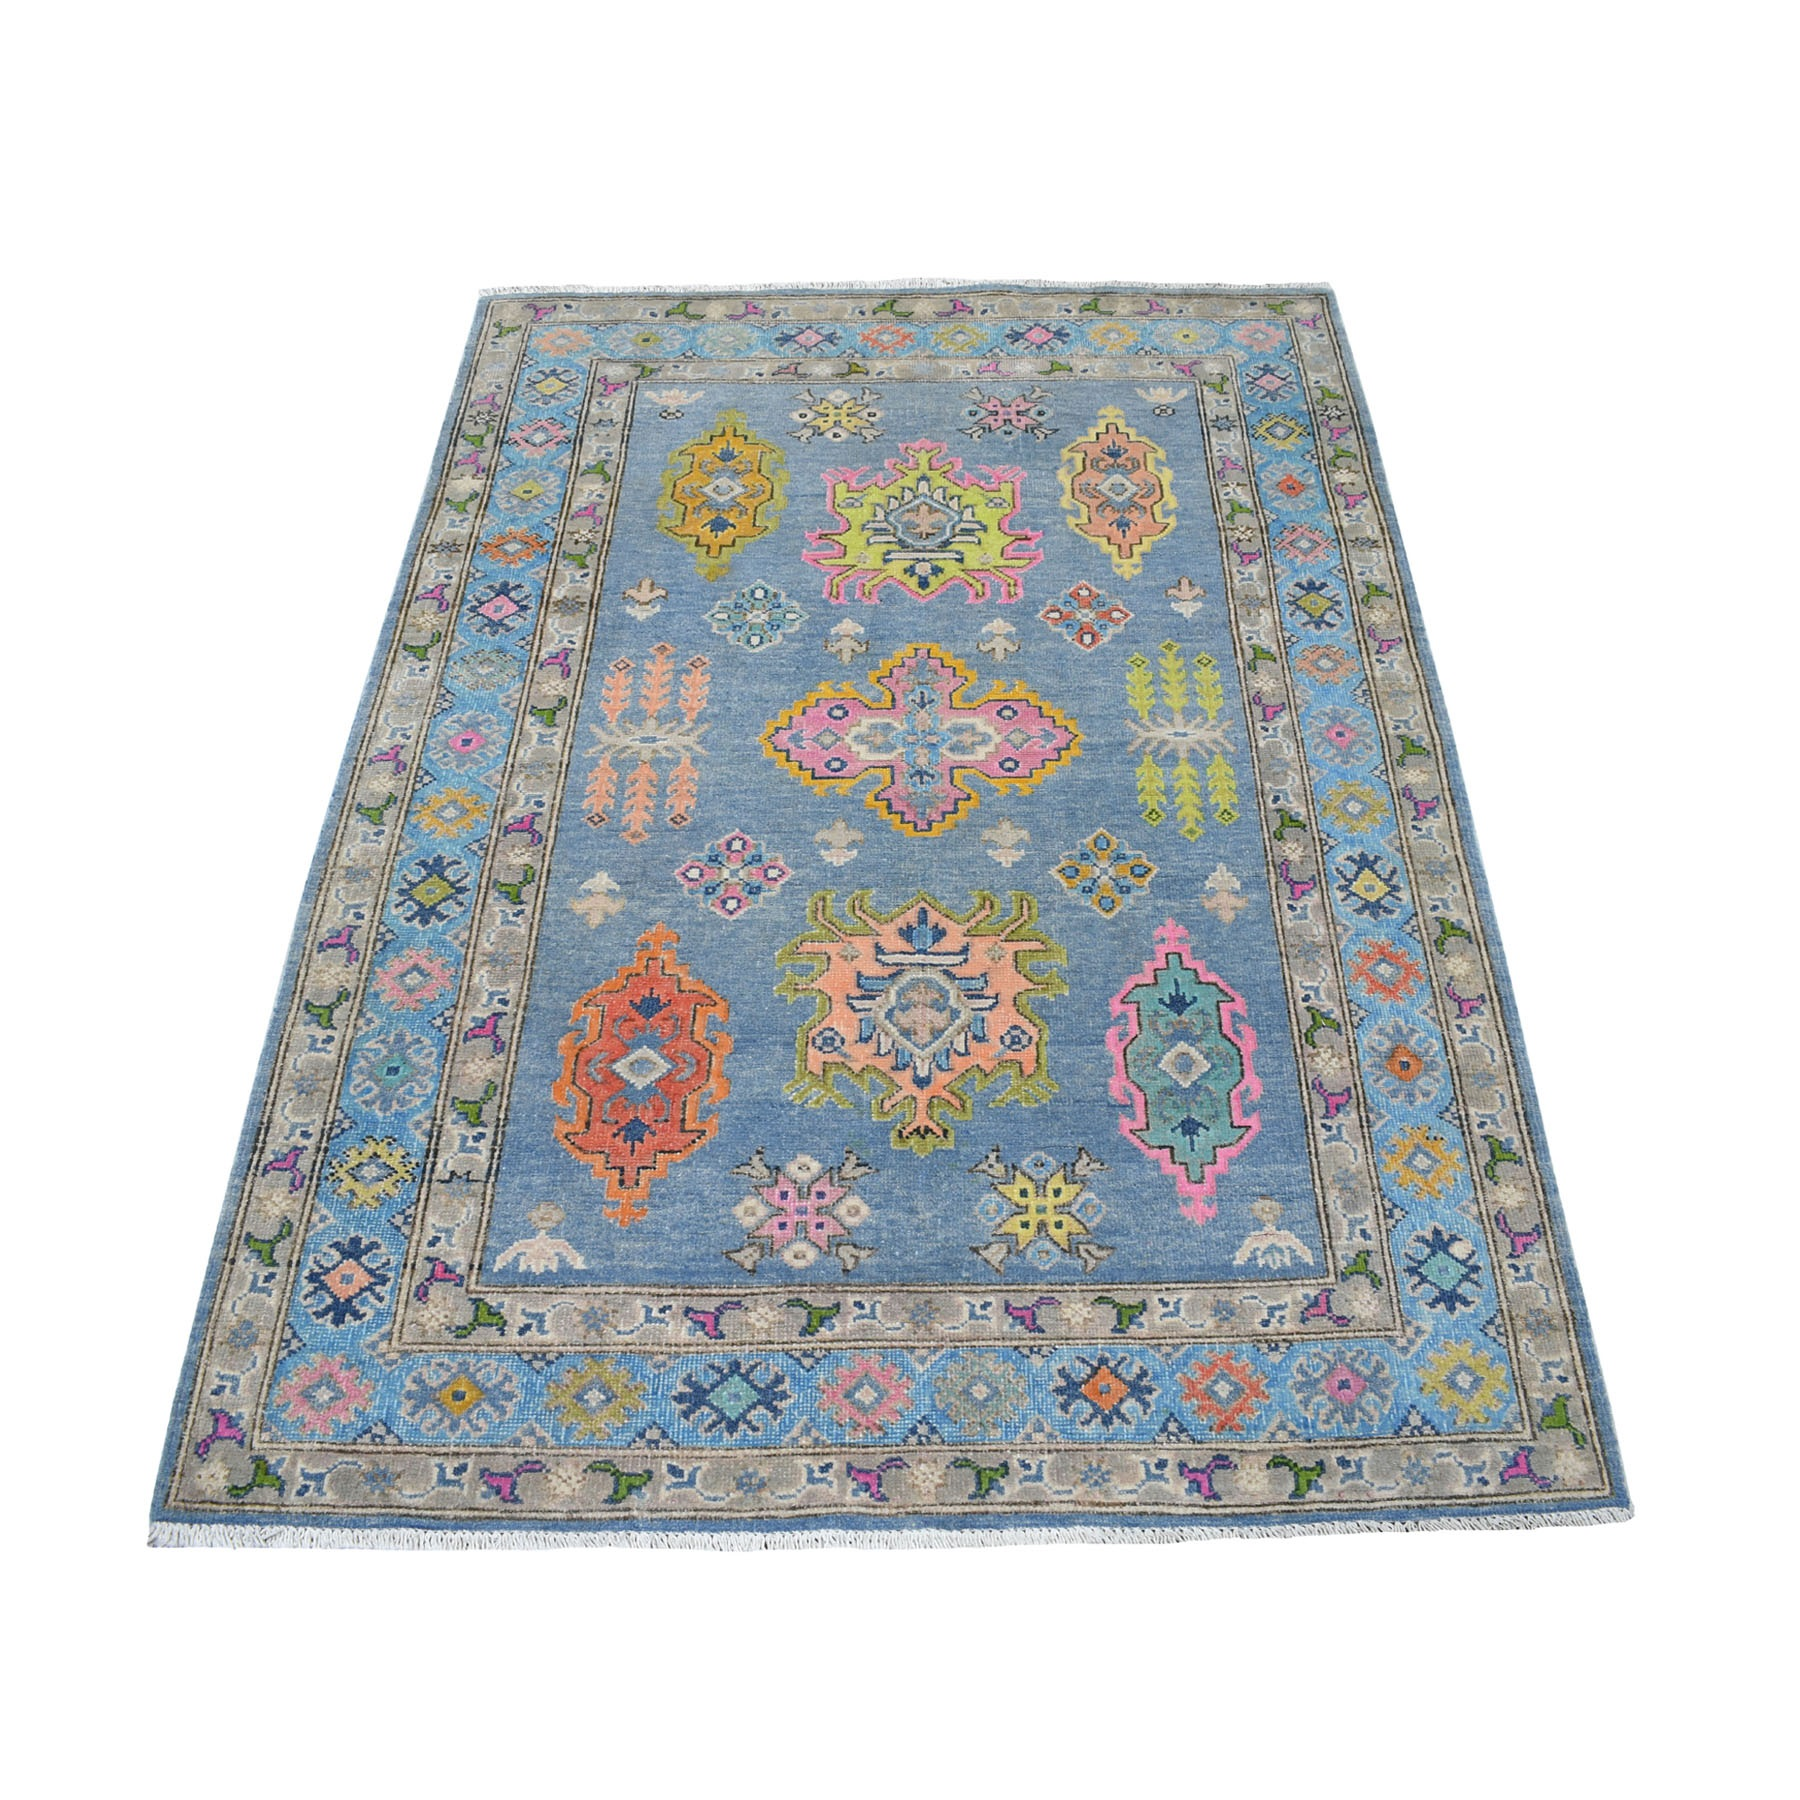 4'x6' Colorful Blue Fusion Kazak Pure Wool Hand Knotted Oriental Rug 53548